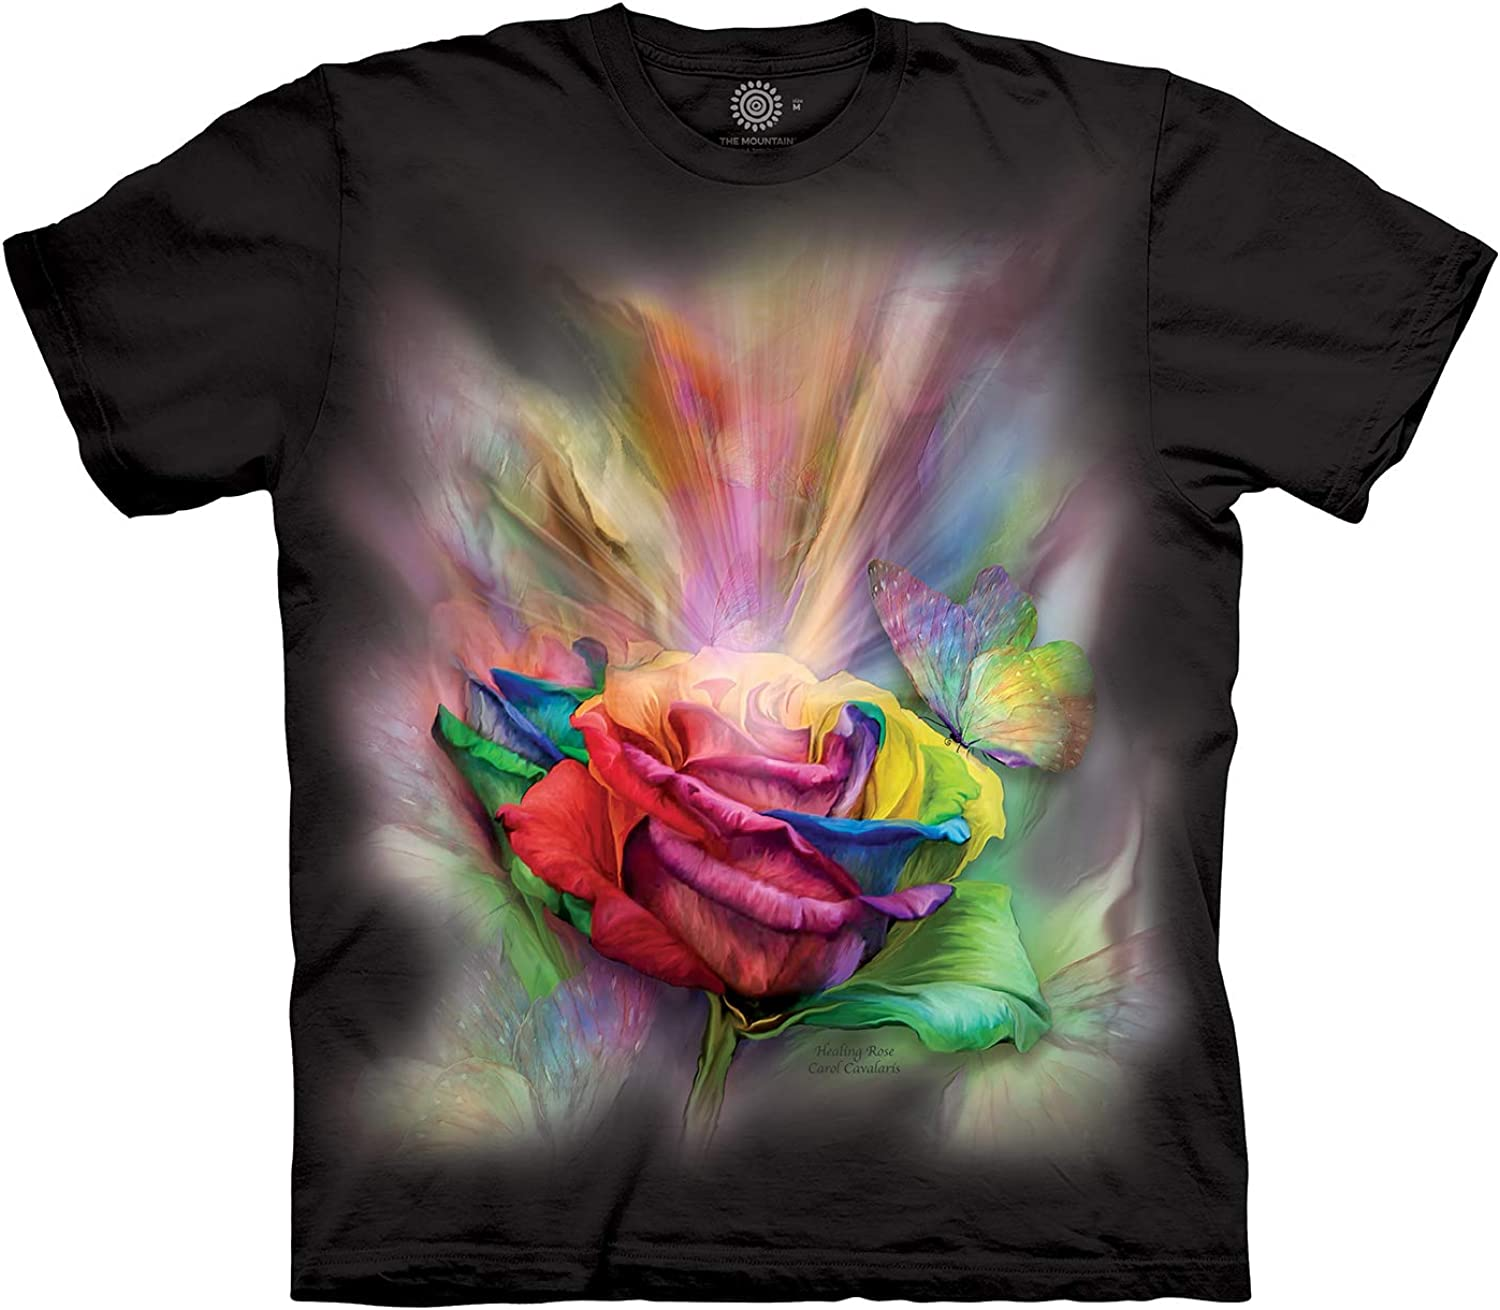 The Mountain Men's Healing Rose T-Shirt